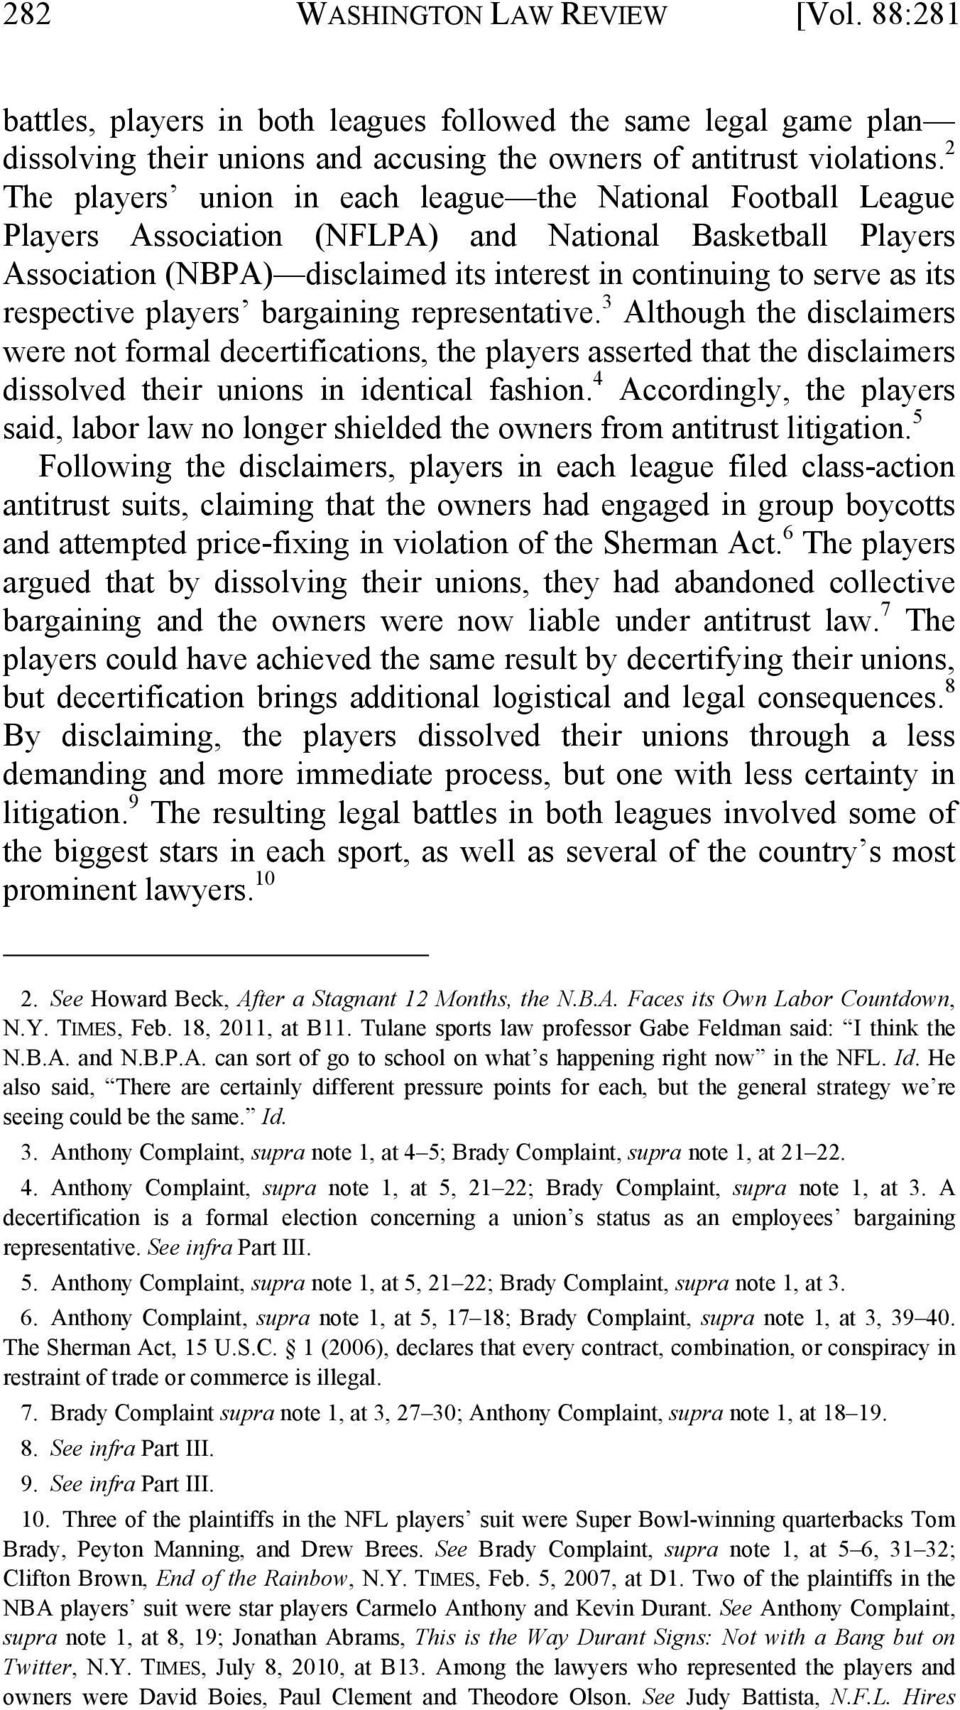 respective players bargaining representative. 3 Although the disclaimers were not formal decertifications, the players asserted that the disclaimers dissolved their unions in identical fashion.